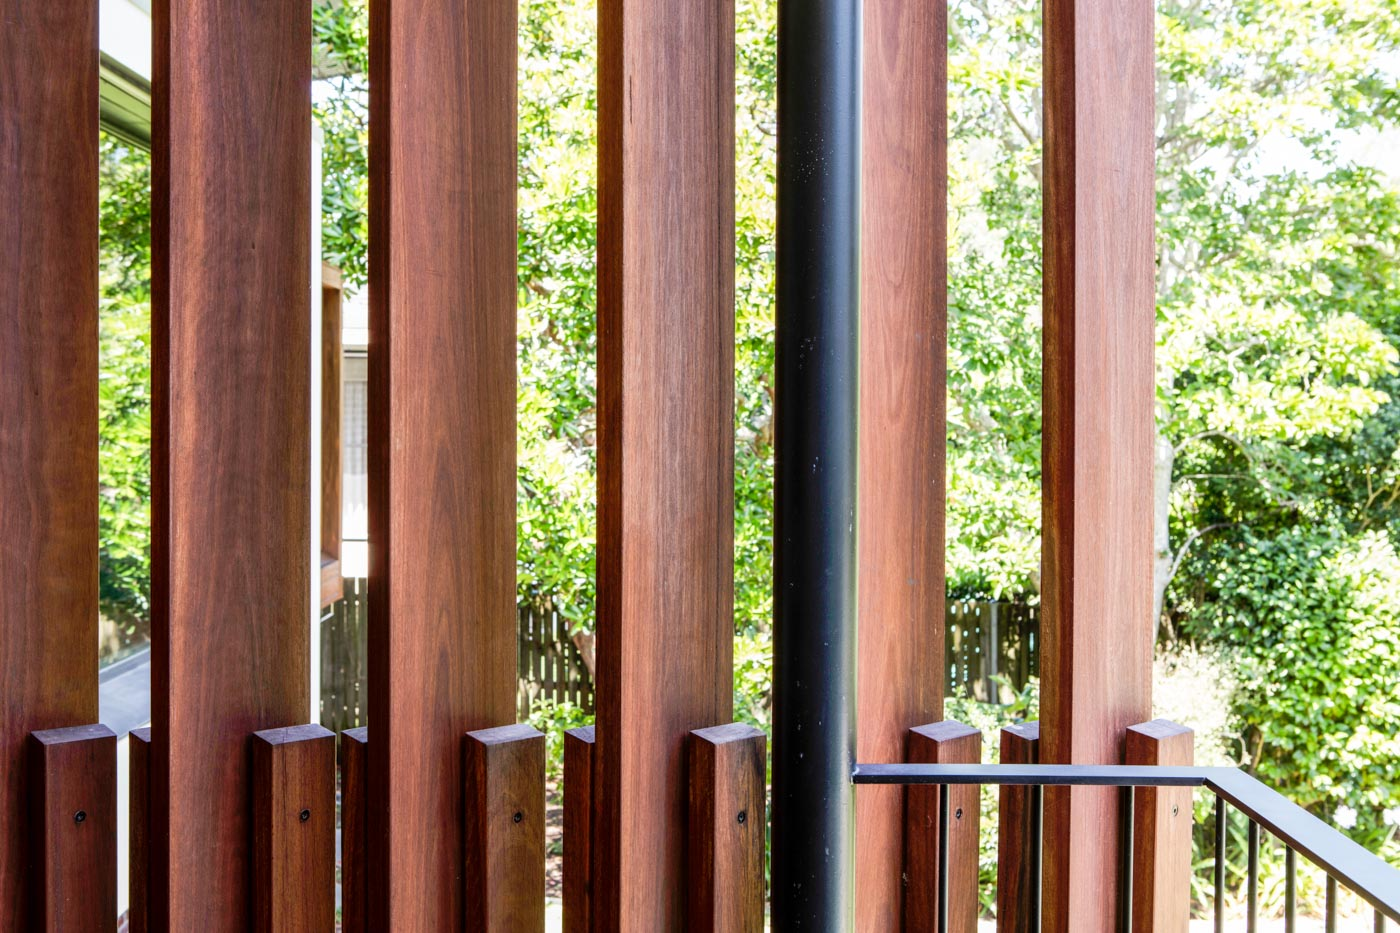 Roseville House by Sydney residential architects Sam Crawford Architects. Detailed timber screens provide privacy and direct the views.